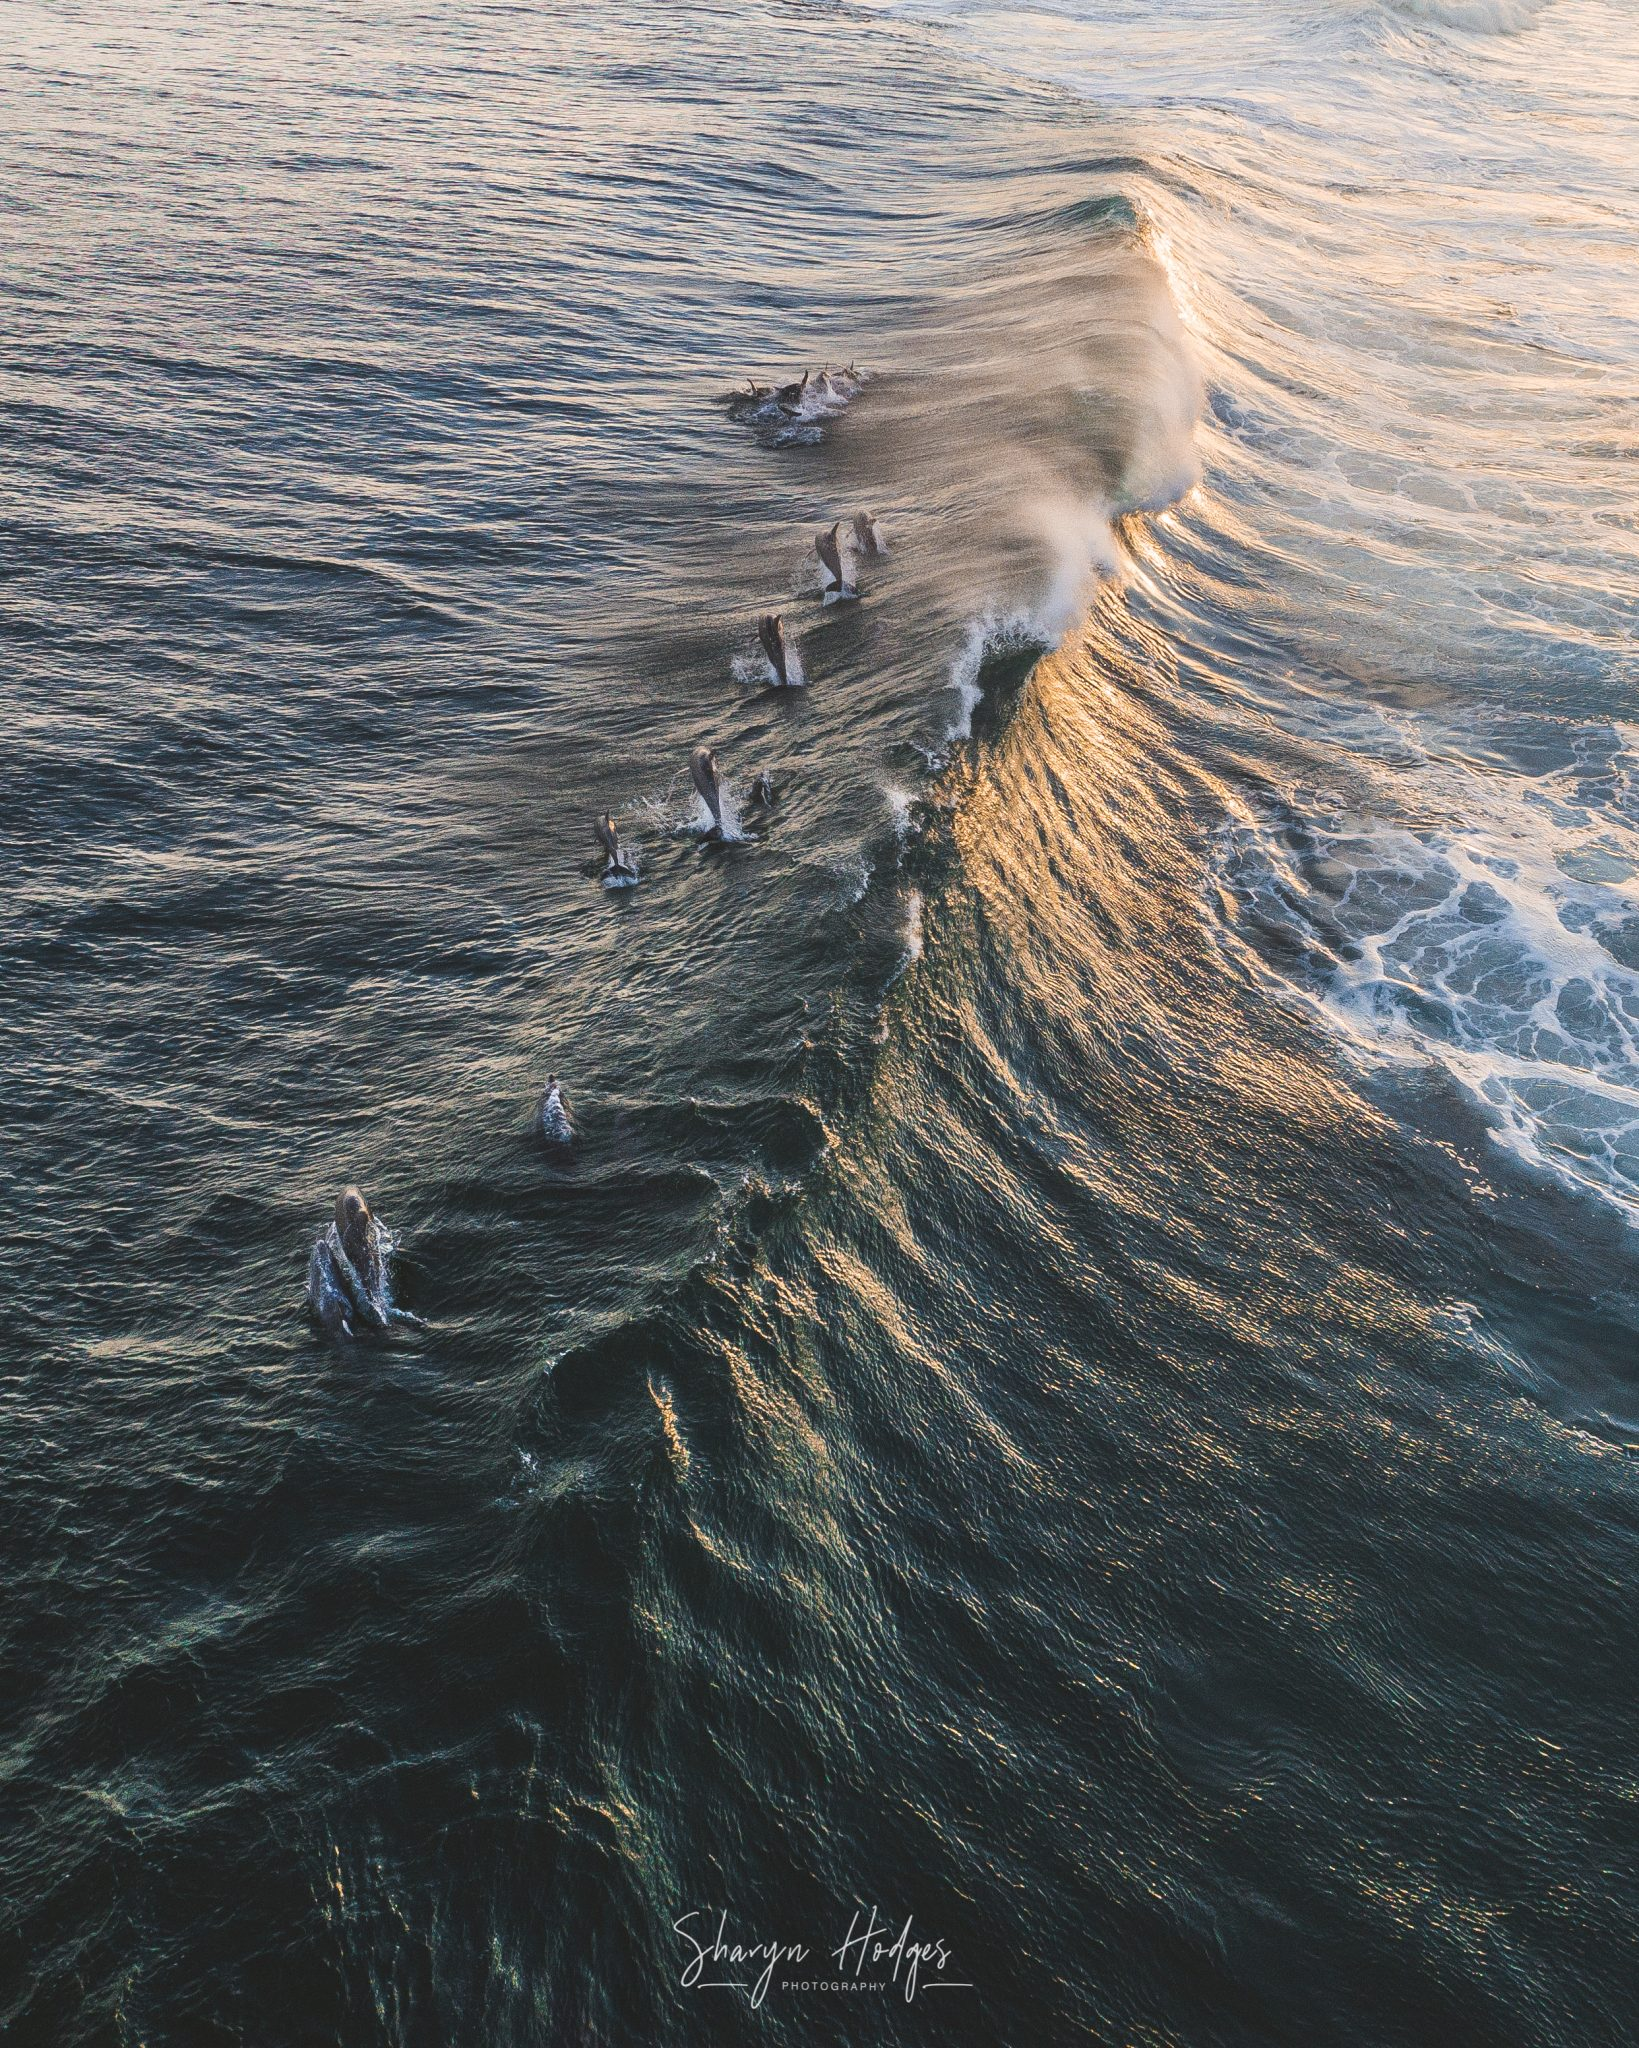 Nine Bottle Nose Dolphins breaking a waves during sunset at Keurboomstrand, Plettenberg Bay